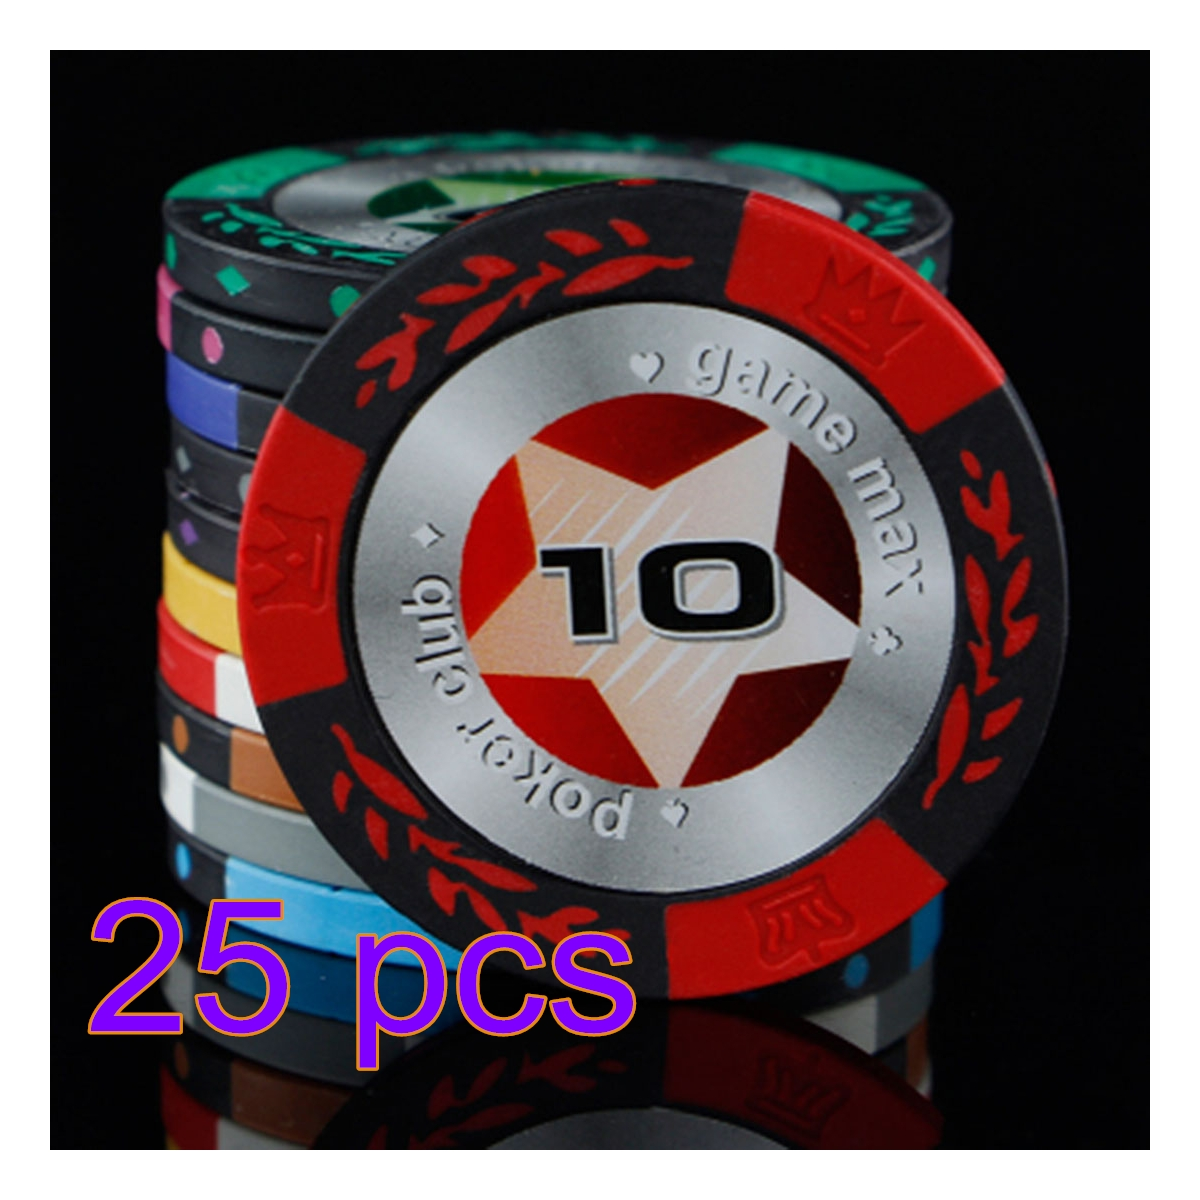 casino reviews online american pocker